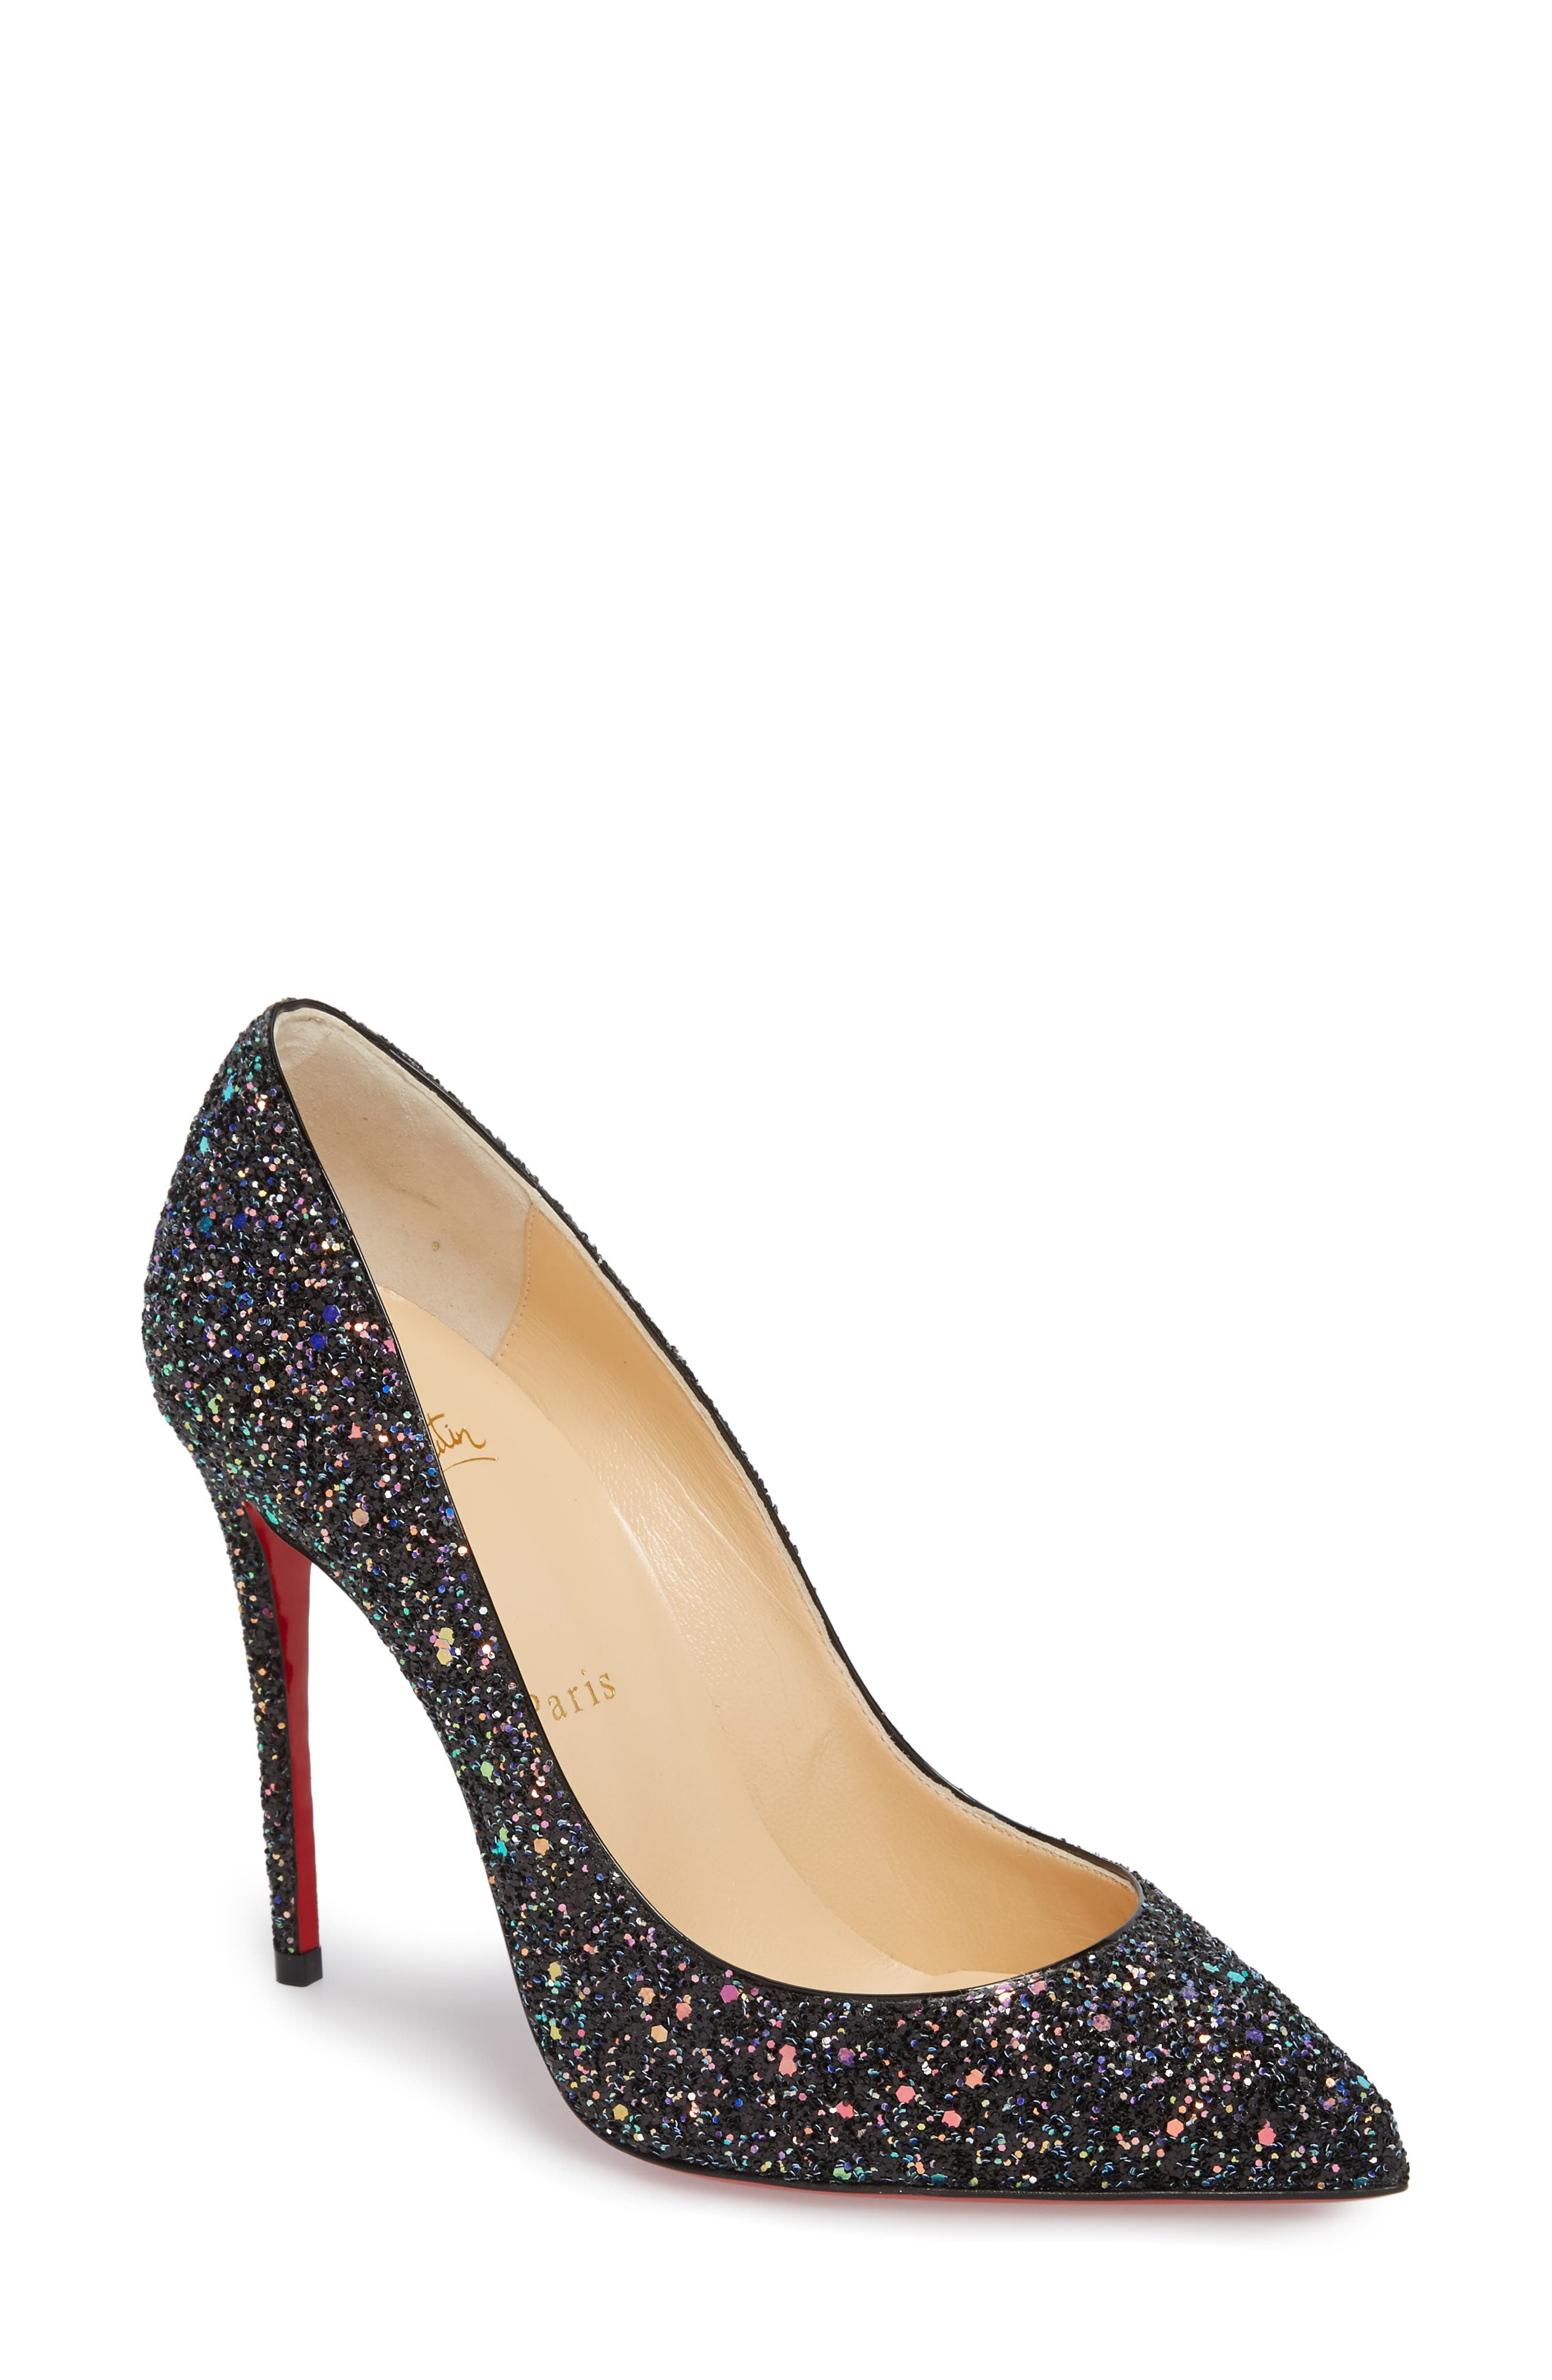 Pigalle Follies Glitter Pointy Toe Pump,                         Main,                         color, 001